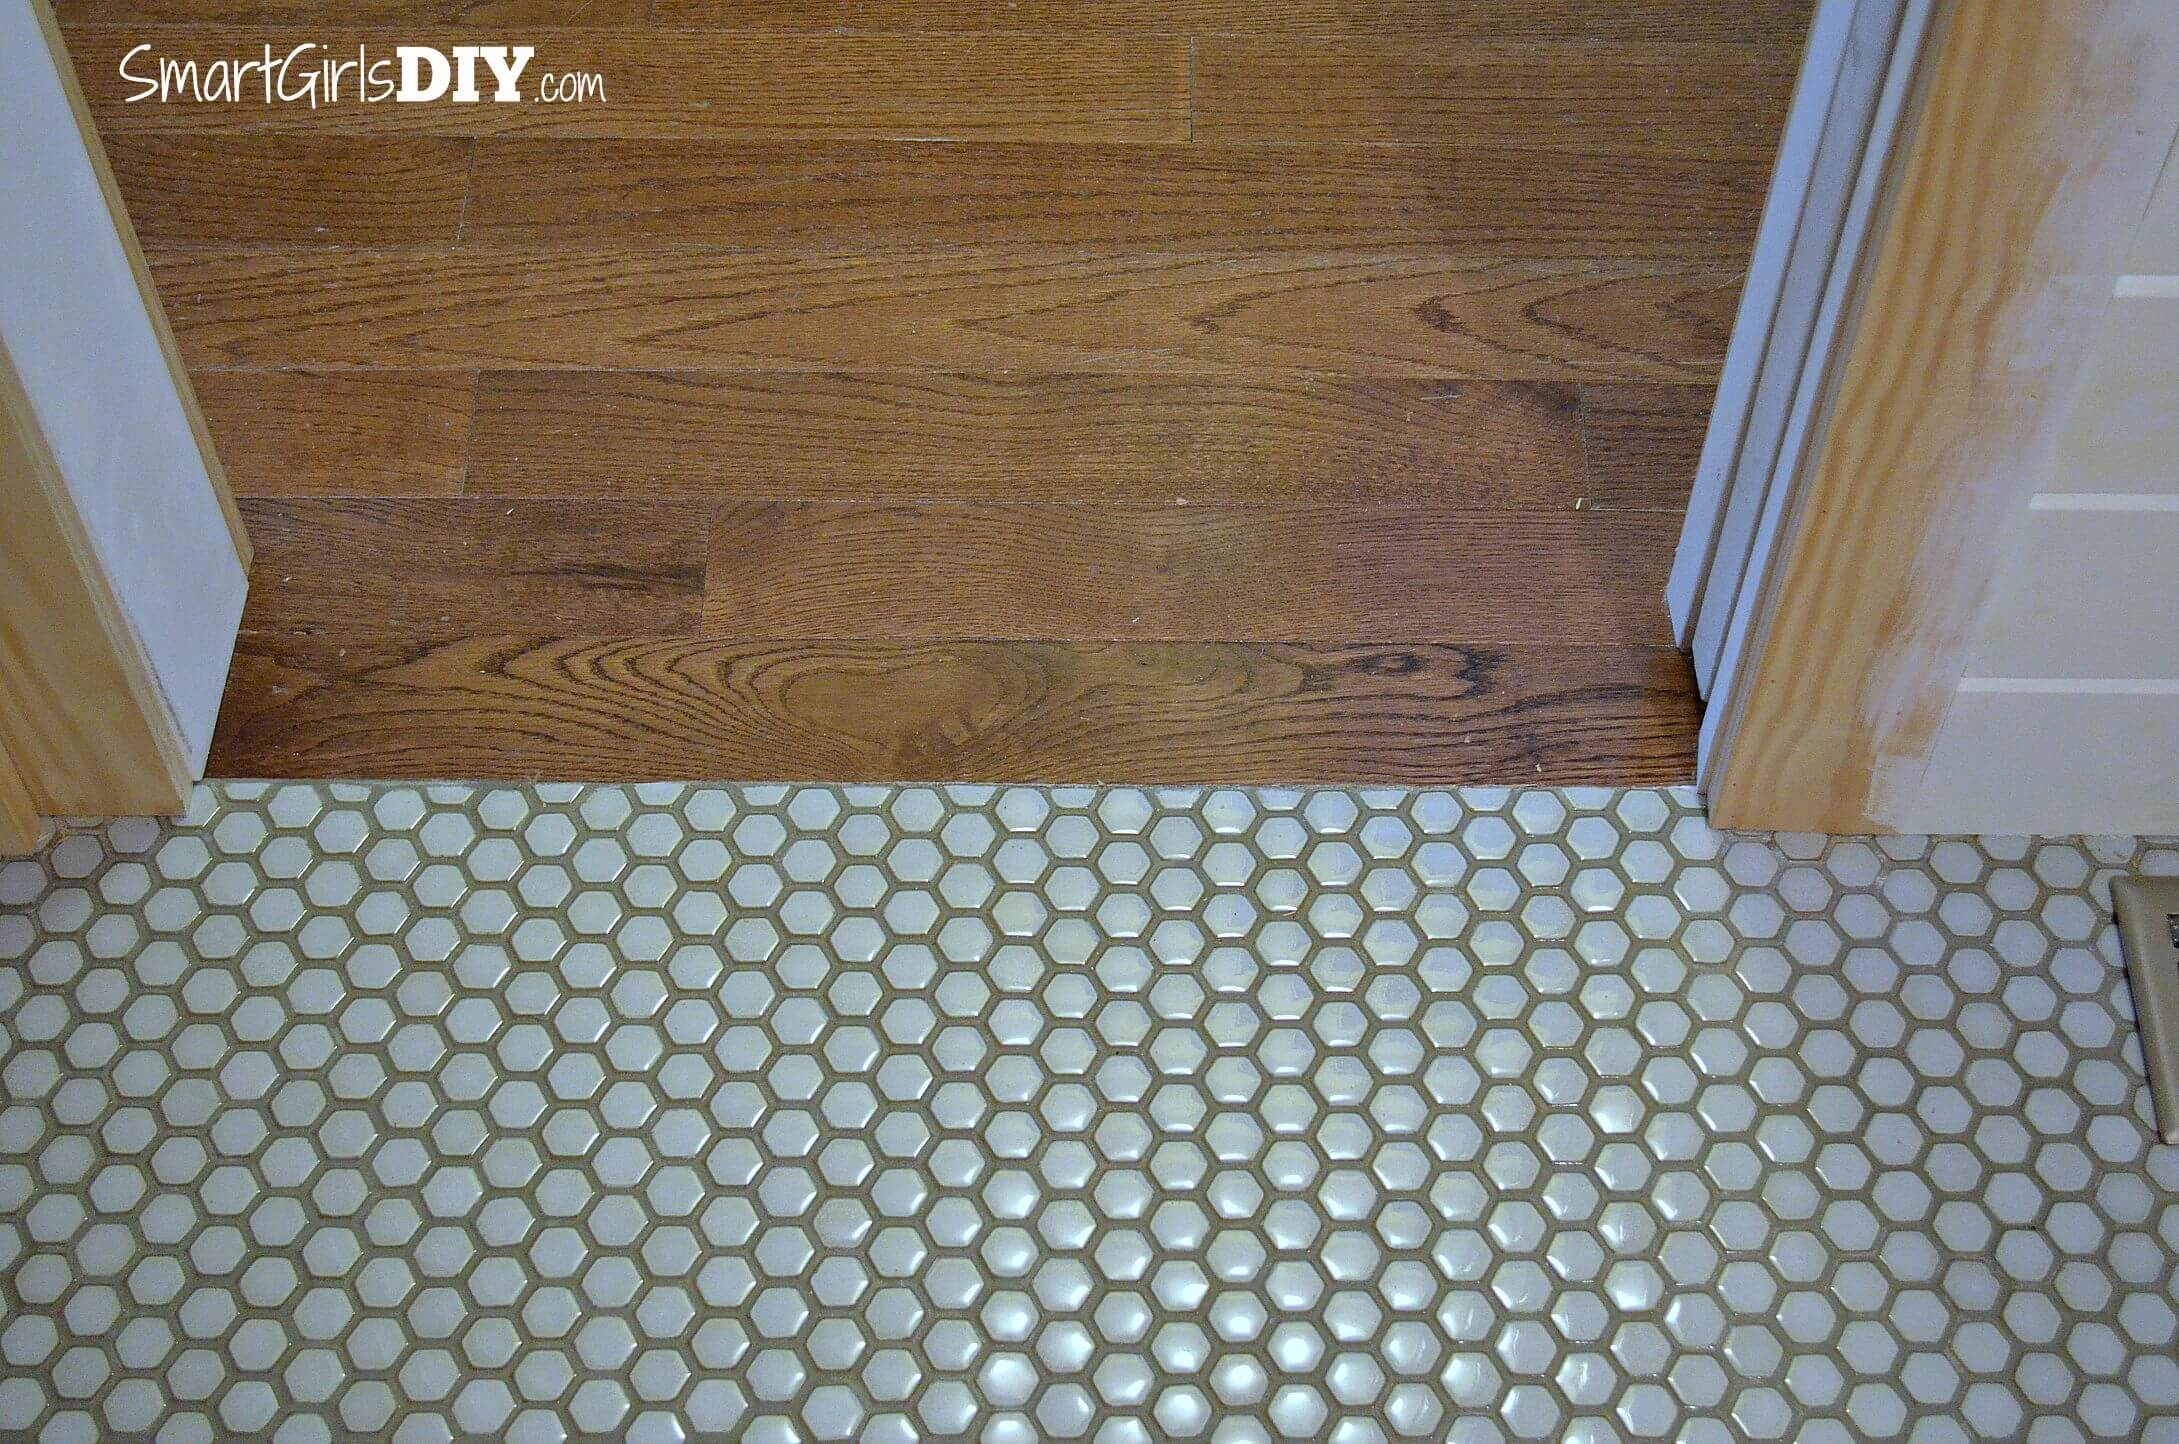 Guest Bathroom 7 Diy Hex Tile Floor